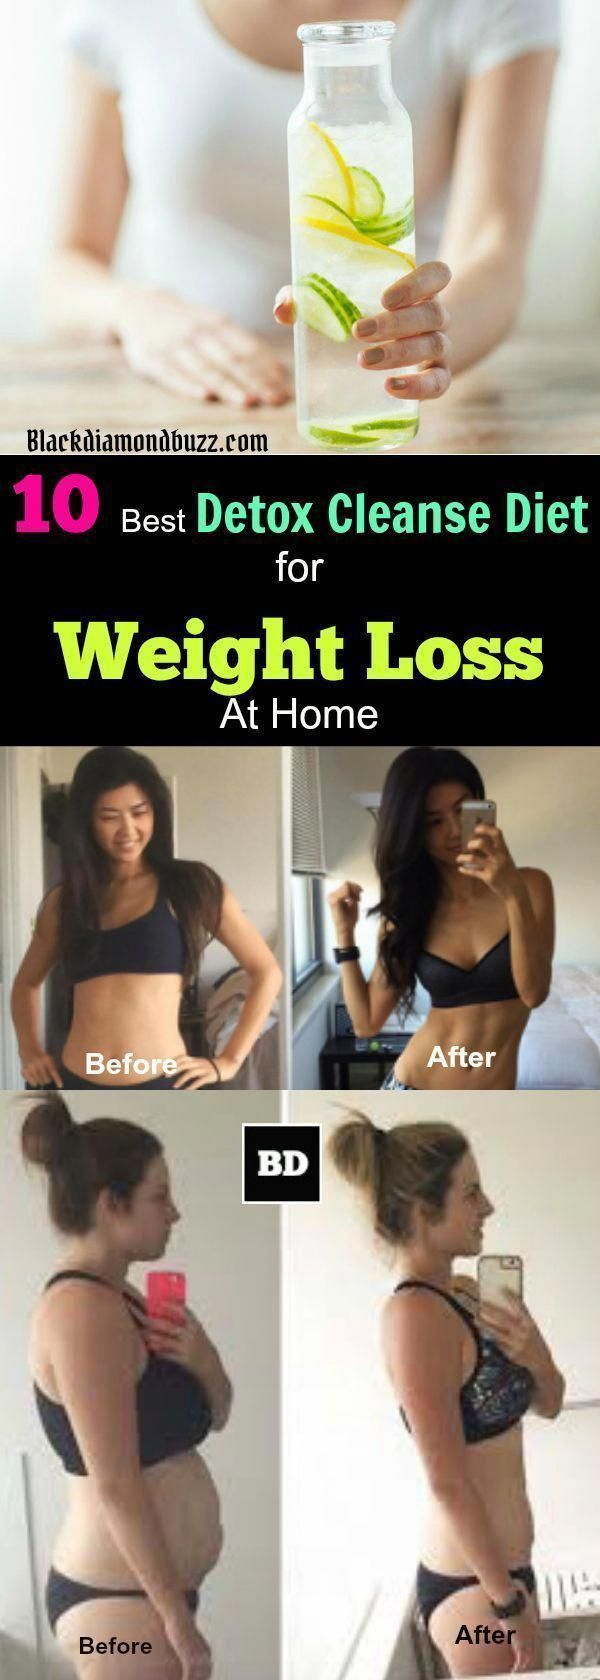 Detox Diet :10 Best Detox Cleanse Diet for Weight Loss At Home- You consider the...